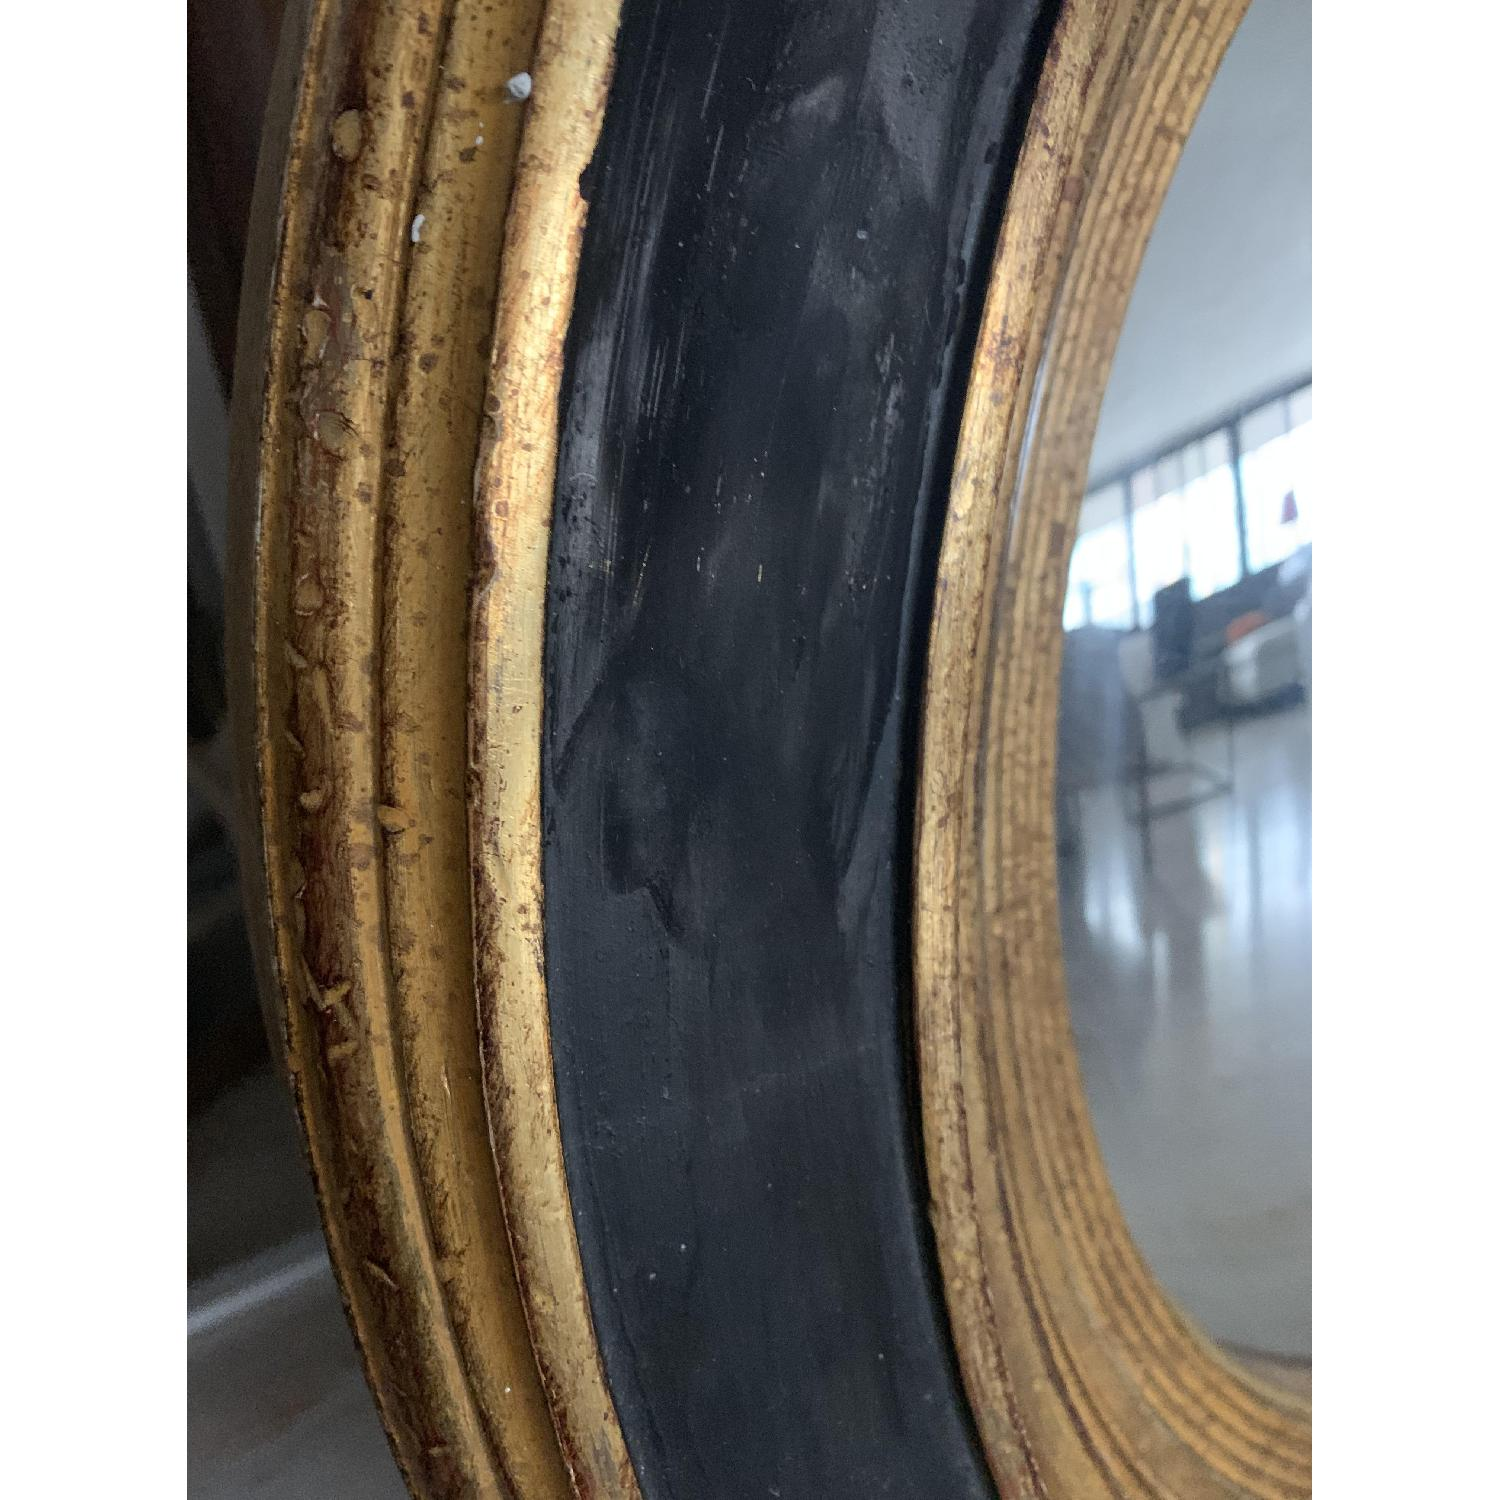 Italian Painted Wood Convex Mirror-3